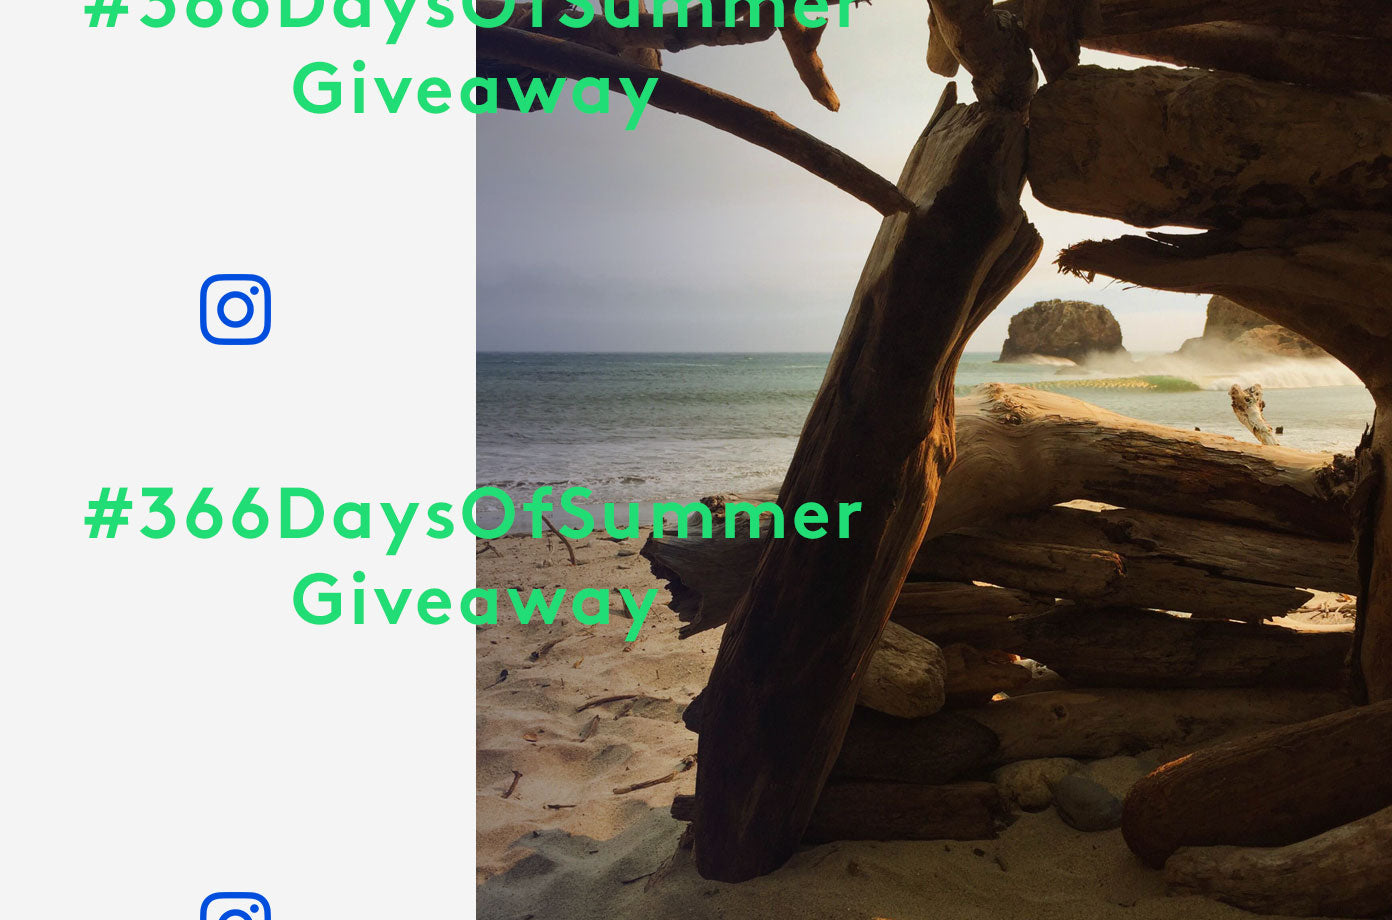 366 Days of Summer Week 32 Winners